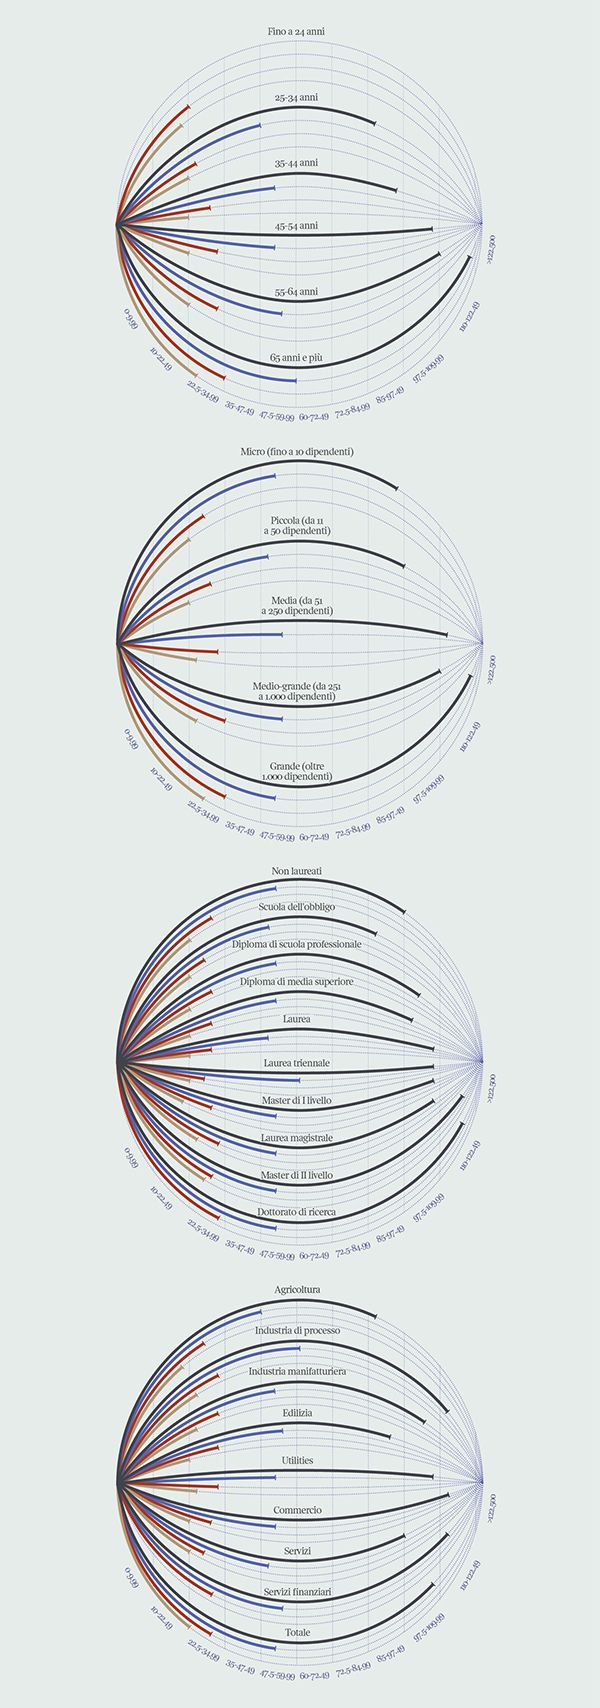 The planets of salaries – by Federica Fragapane and Francesco Majno on Behance